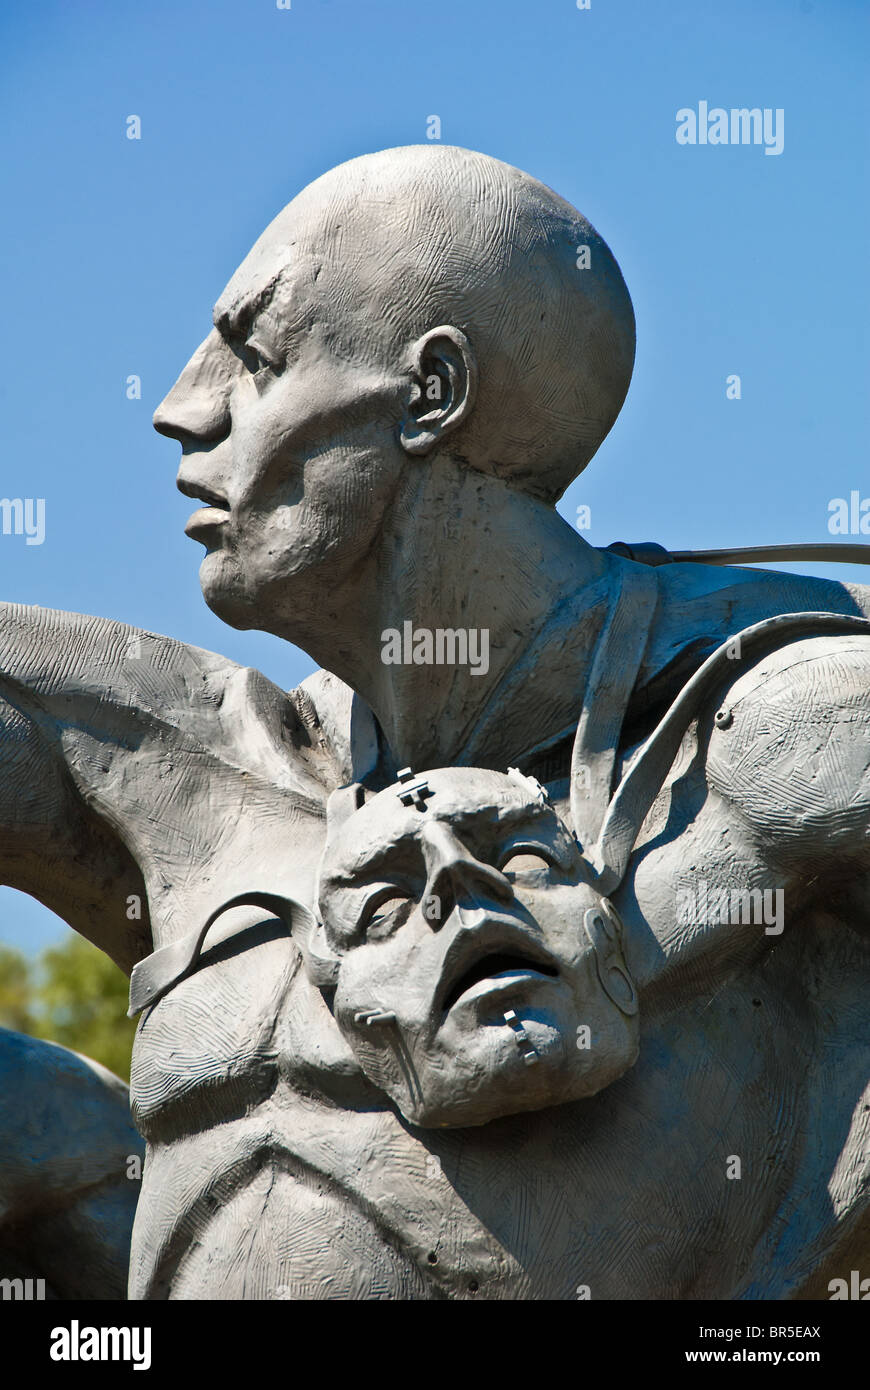 'The Chase' cast stainless steel sculpture in front of the Barber Vintage Motorsports Museum in Birmingham, - Stock Image